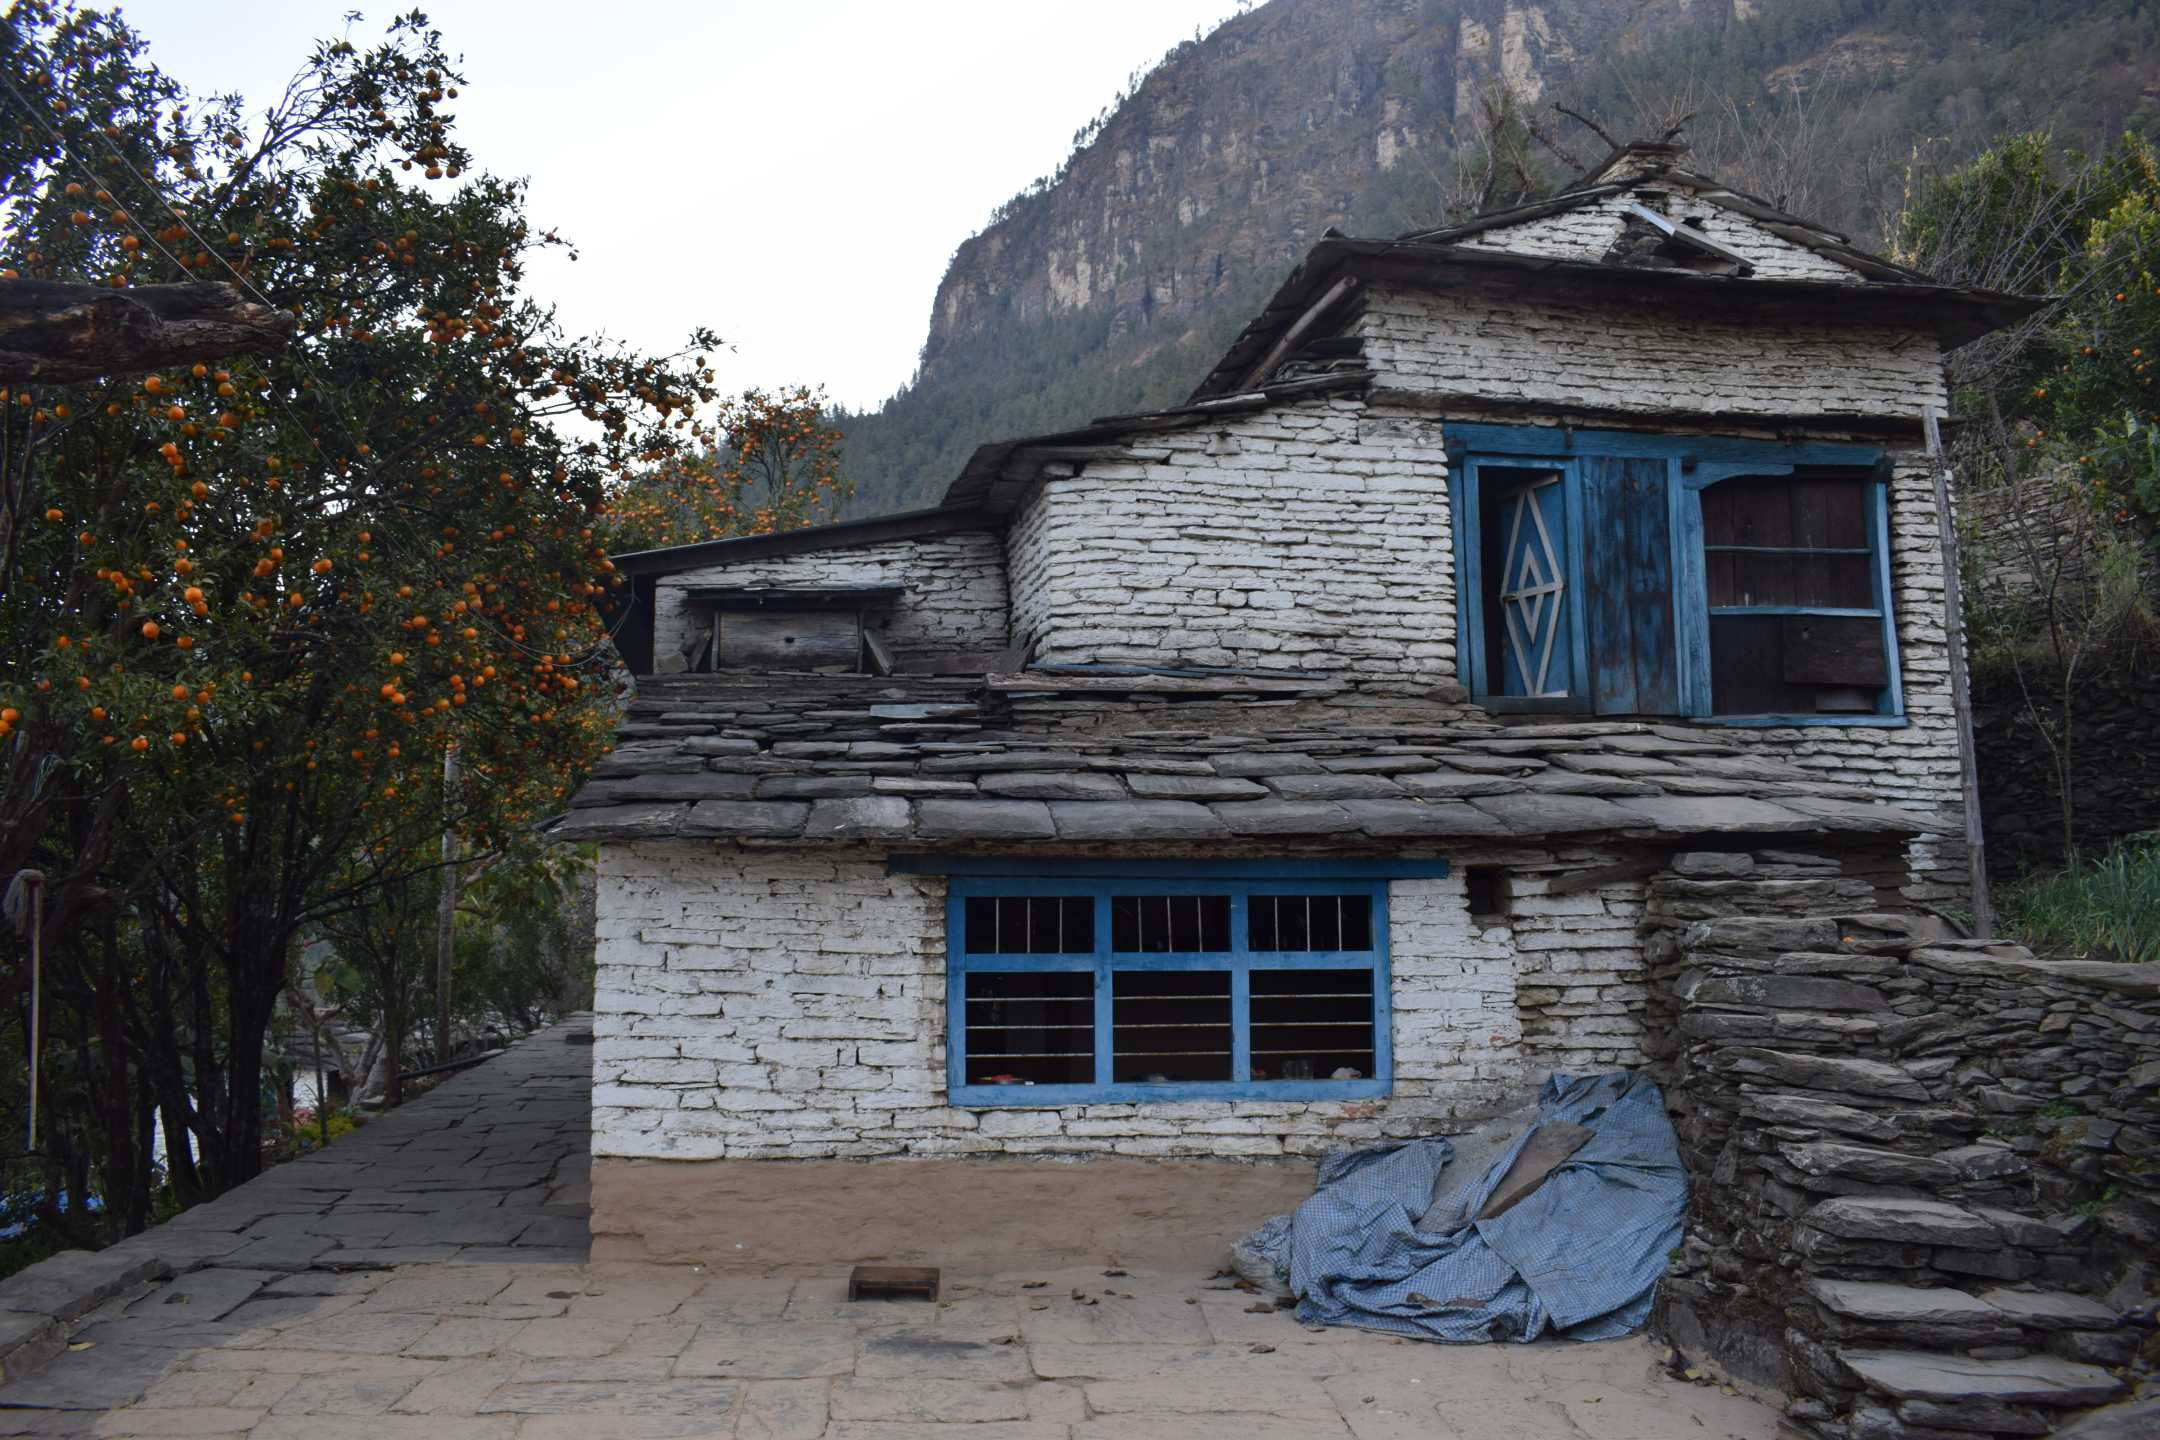 Community Lodge made in a traditional from stones and wood, a common architecture seen in the Himalayan regions of Nepal.